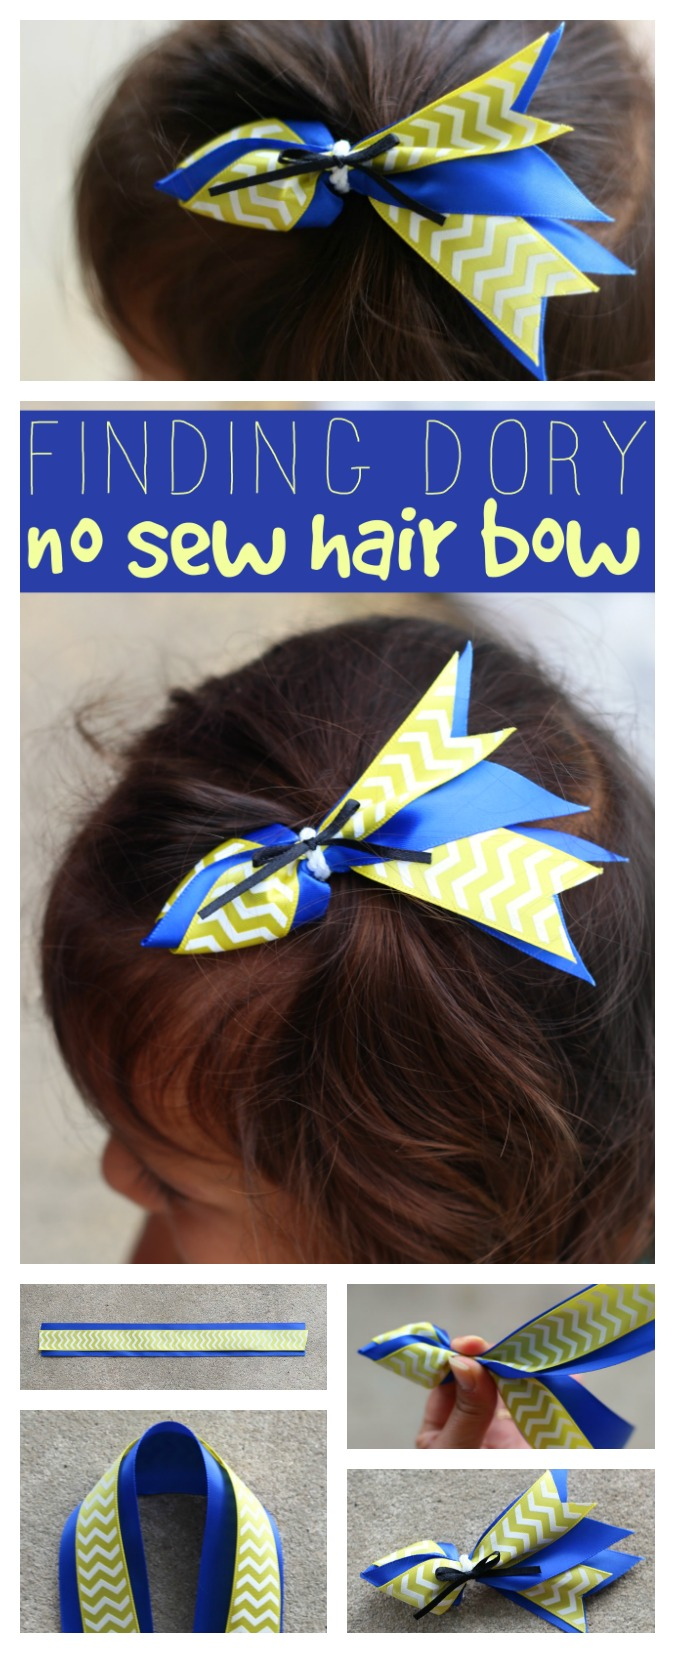 Finding Dory hair bow pinterest